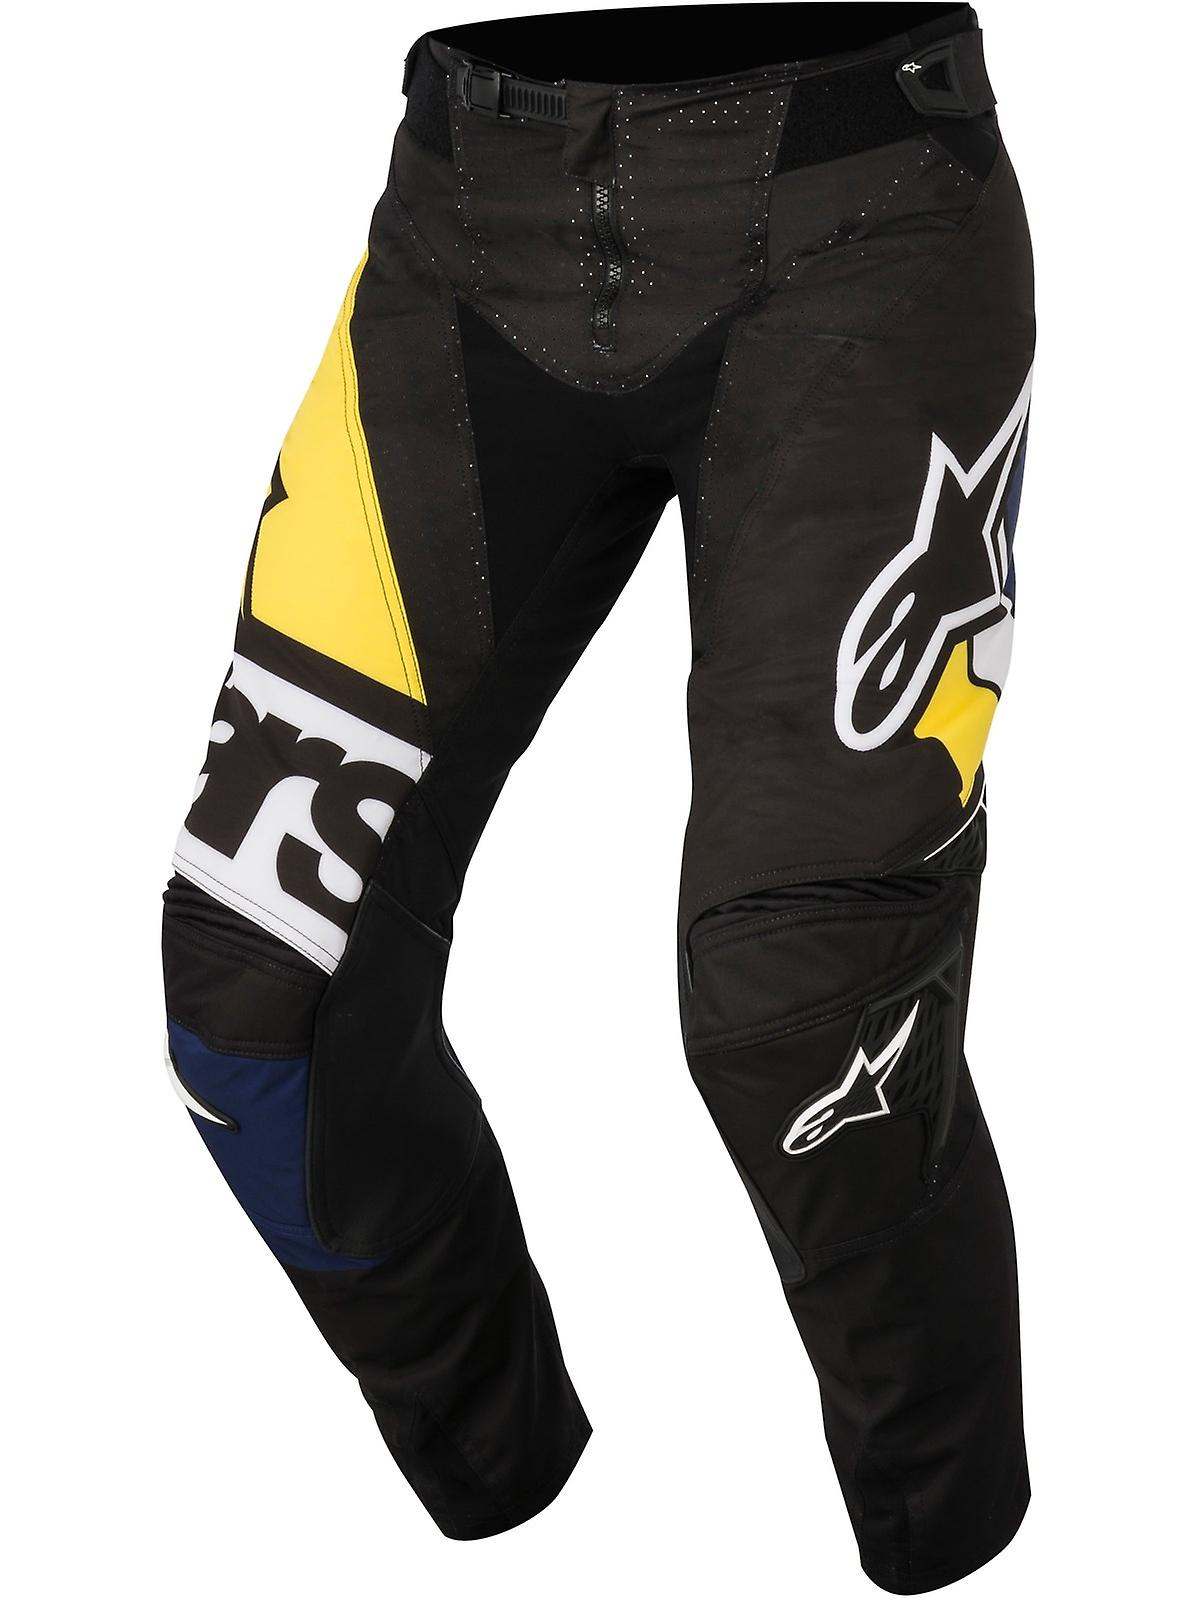 Alpinestars Black-Blue-Yellow 2018 Techstar Factory MX Pant